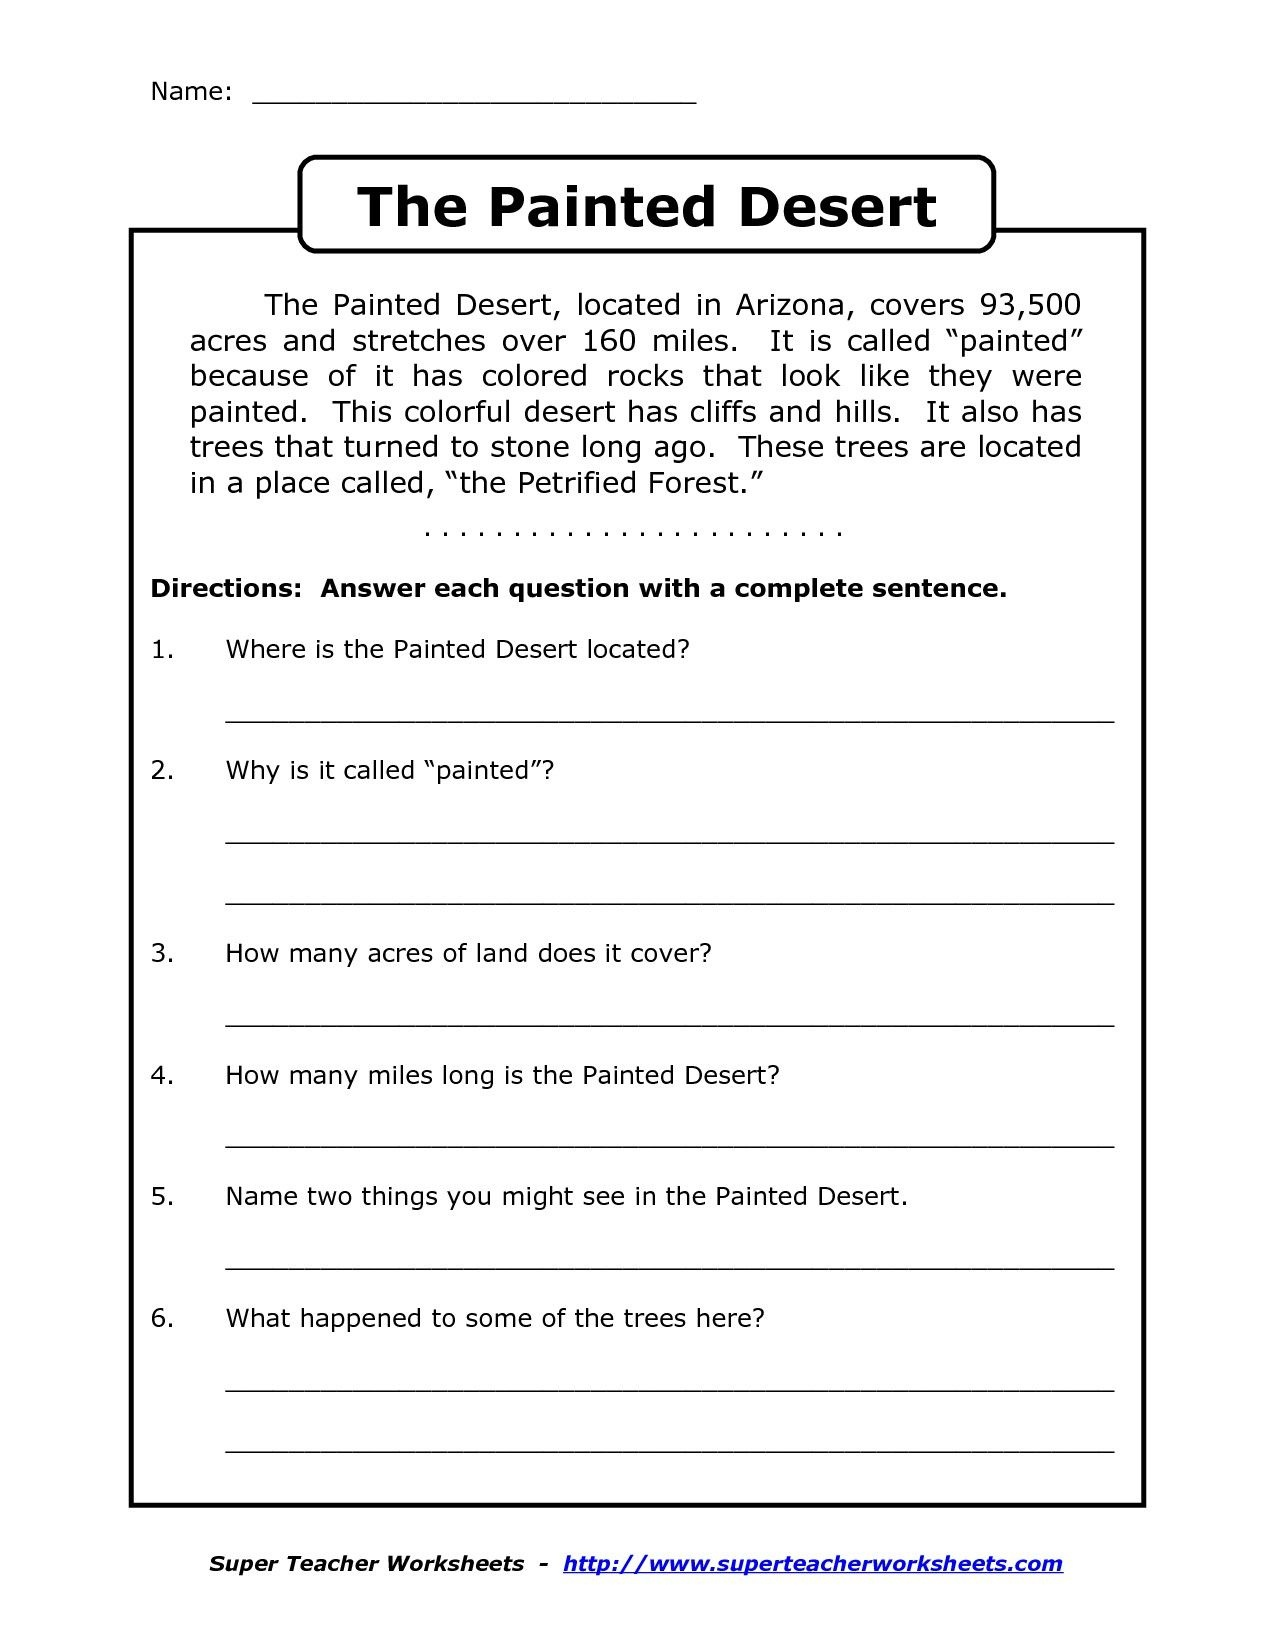 Image Result For Free Printable Worksheets For Grade 4 Comprehension - Free Printable Reading Comprehension Worksheets For Adults